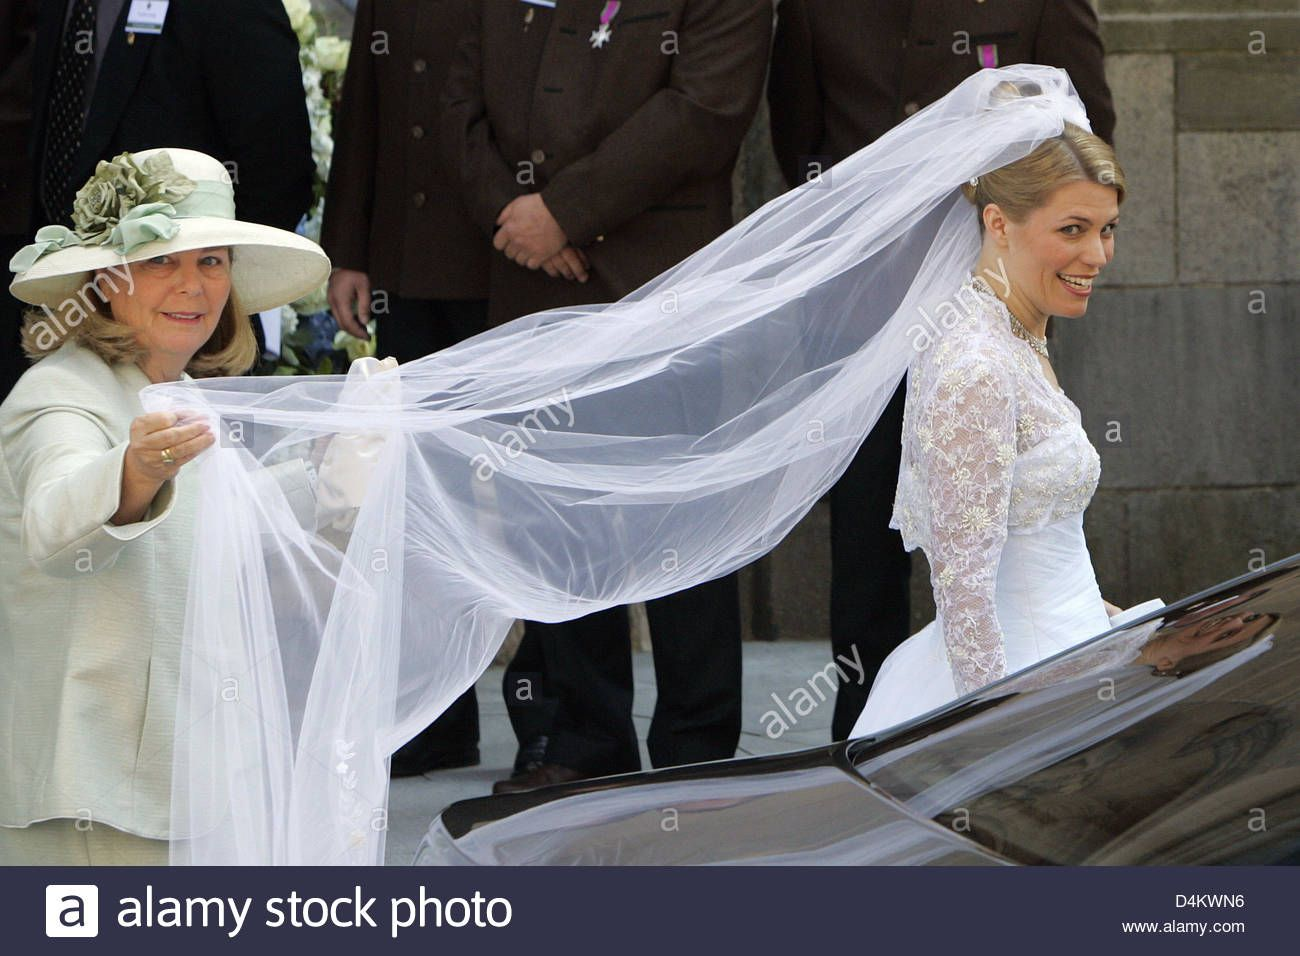 Pin Auf Royal Weddings